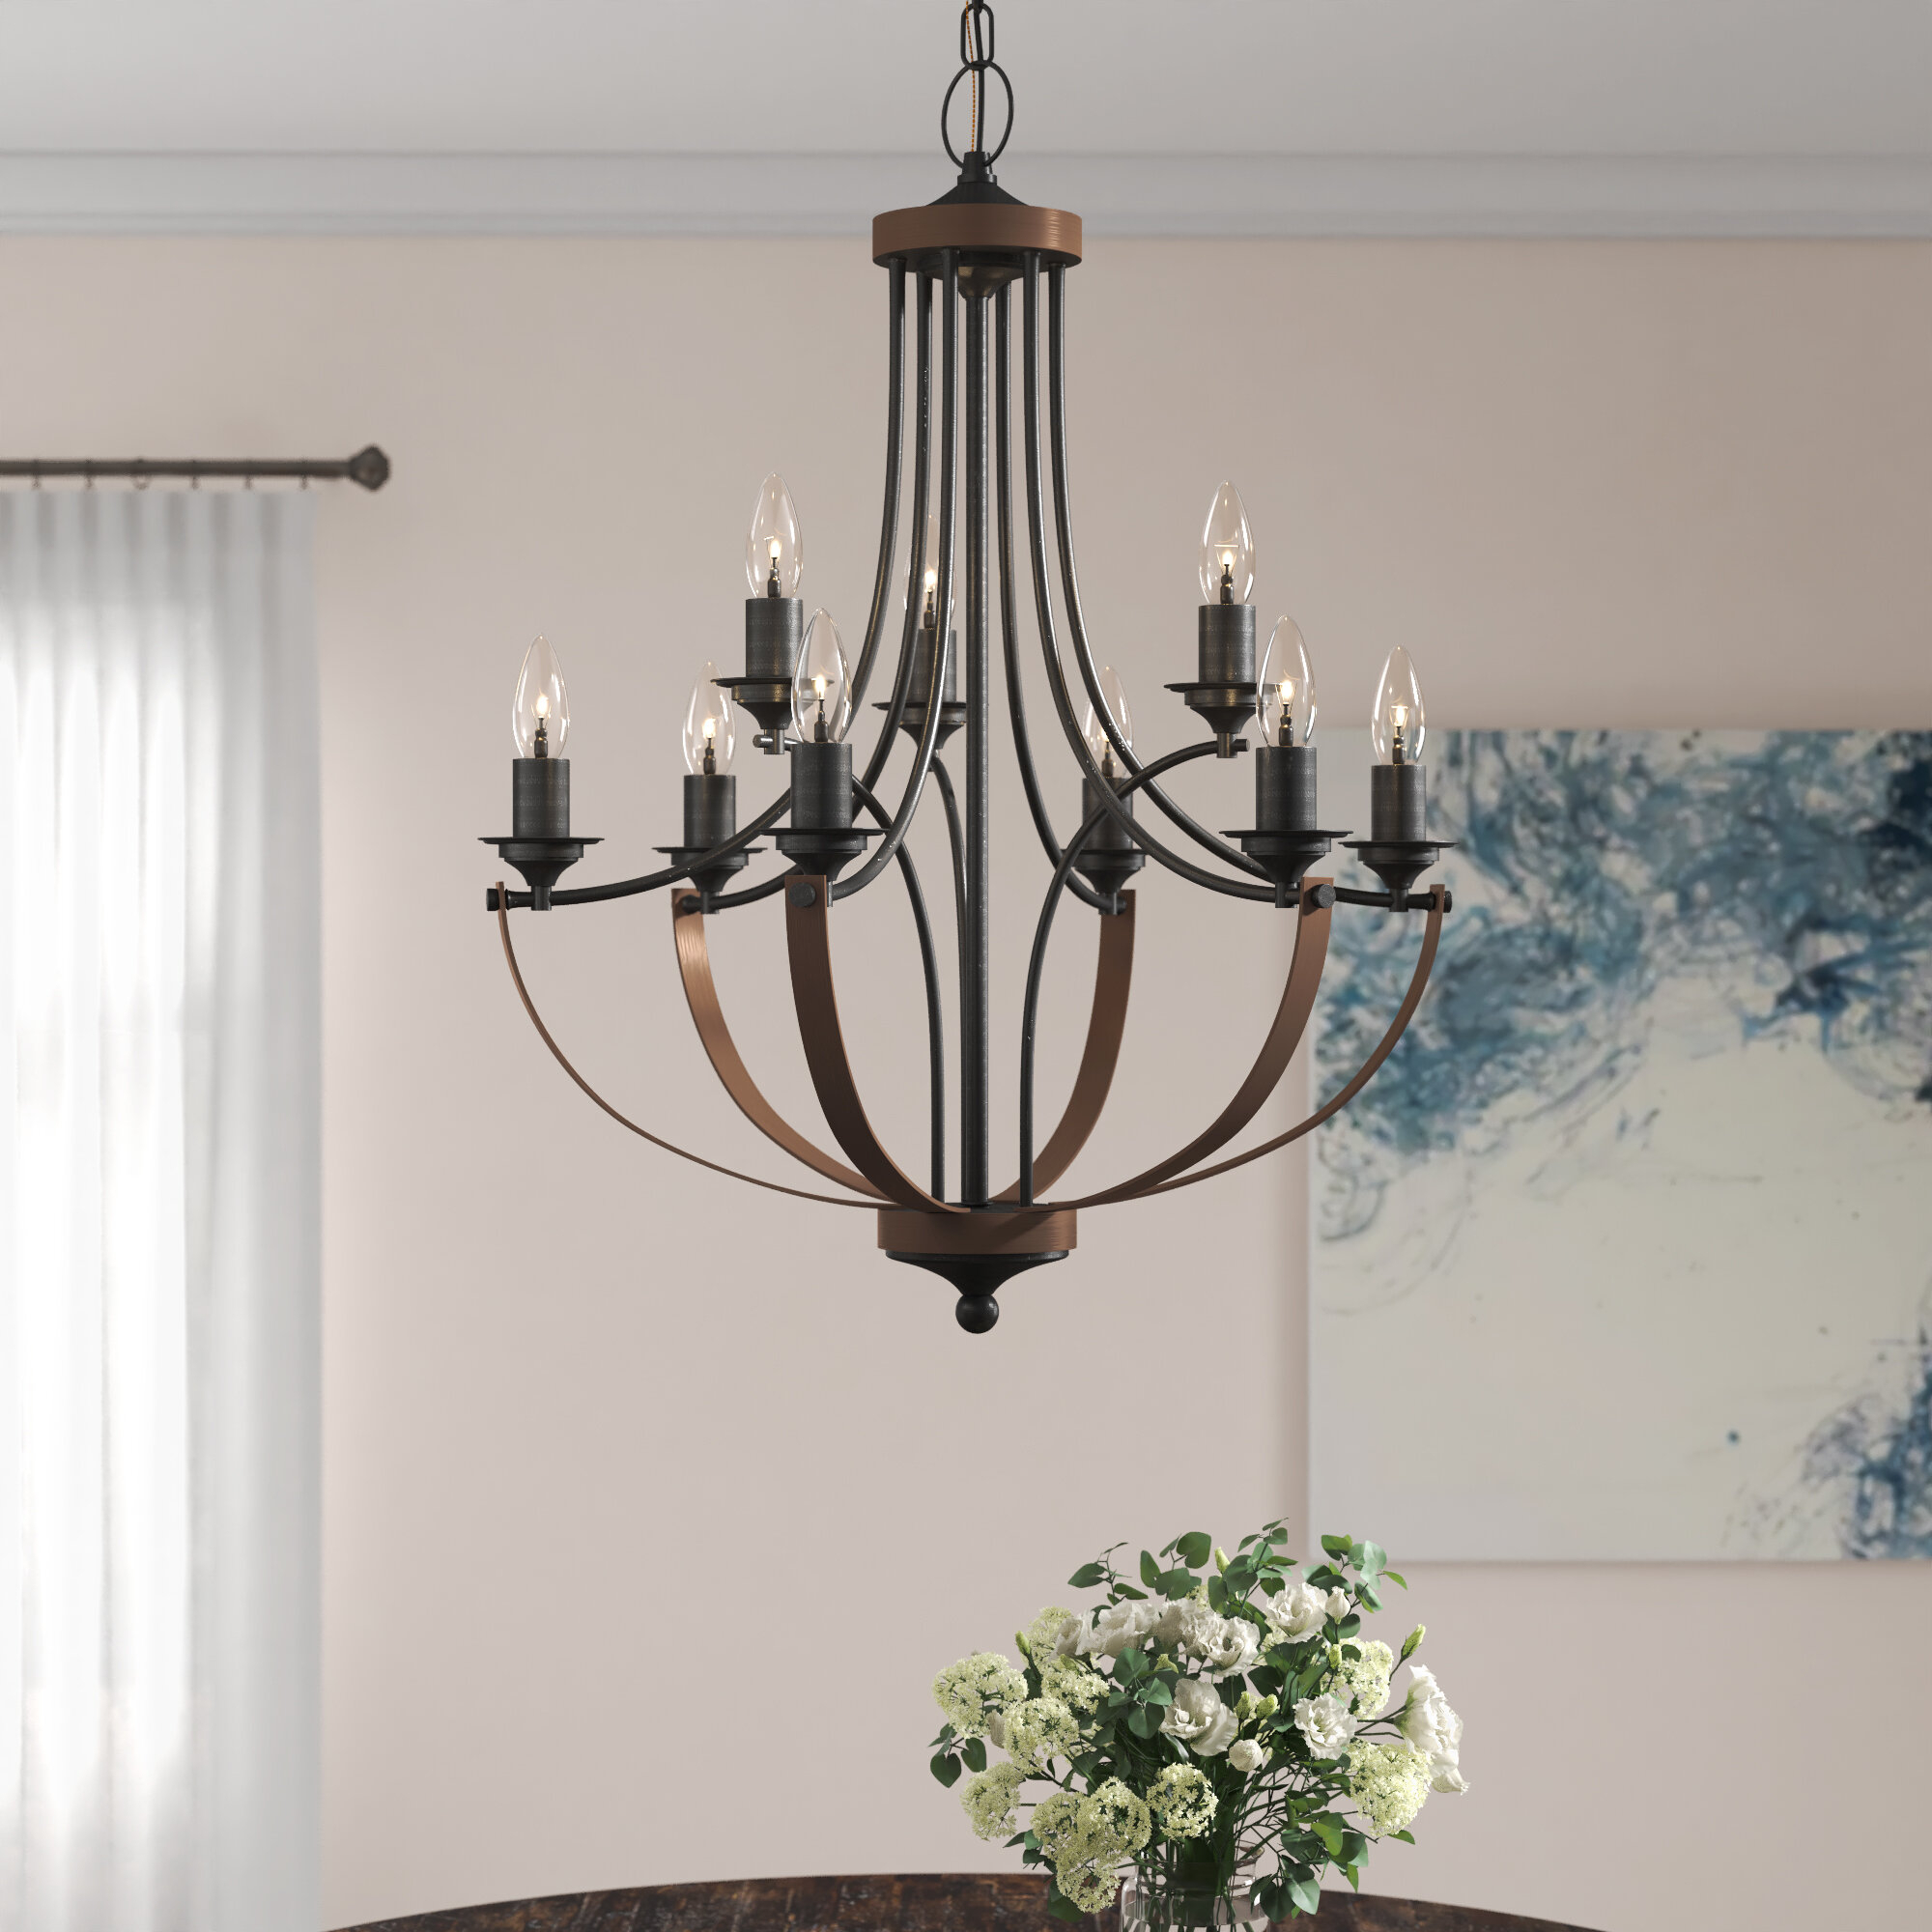 Camilla 9 Light Candle Style Chandelier Intended For Giverny 9 Light Candle Style Chandeliers (View 3 of 30)